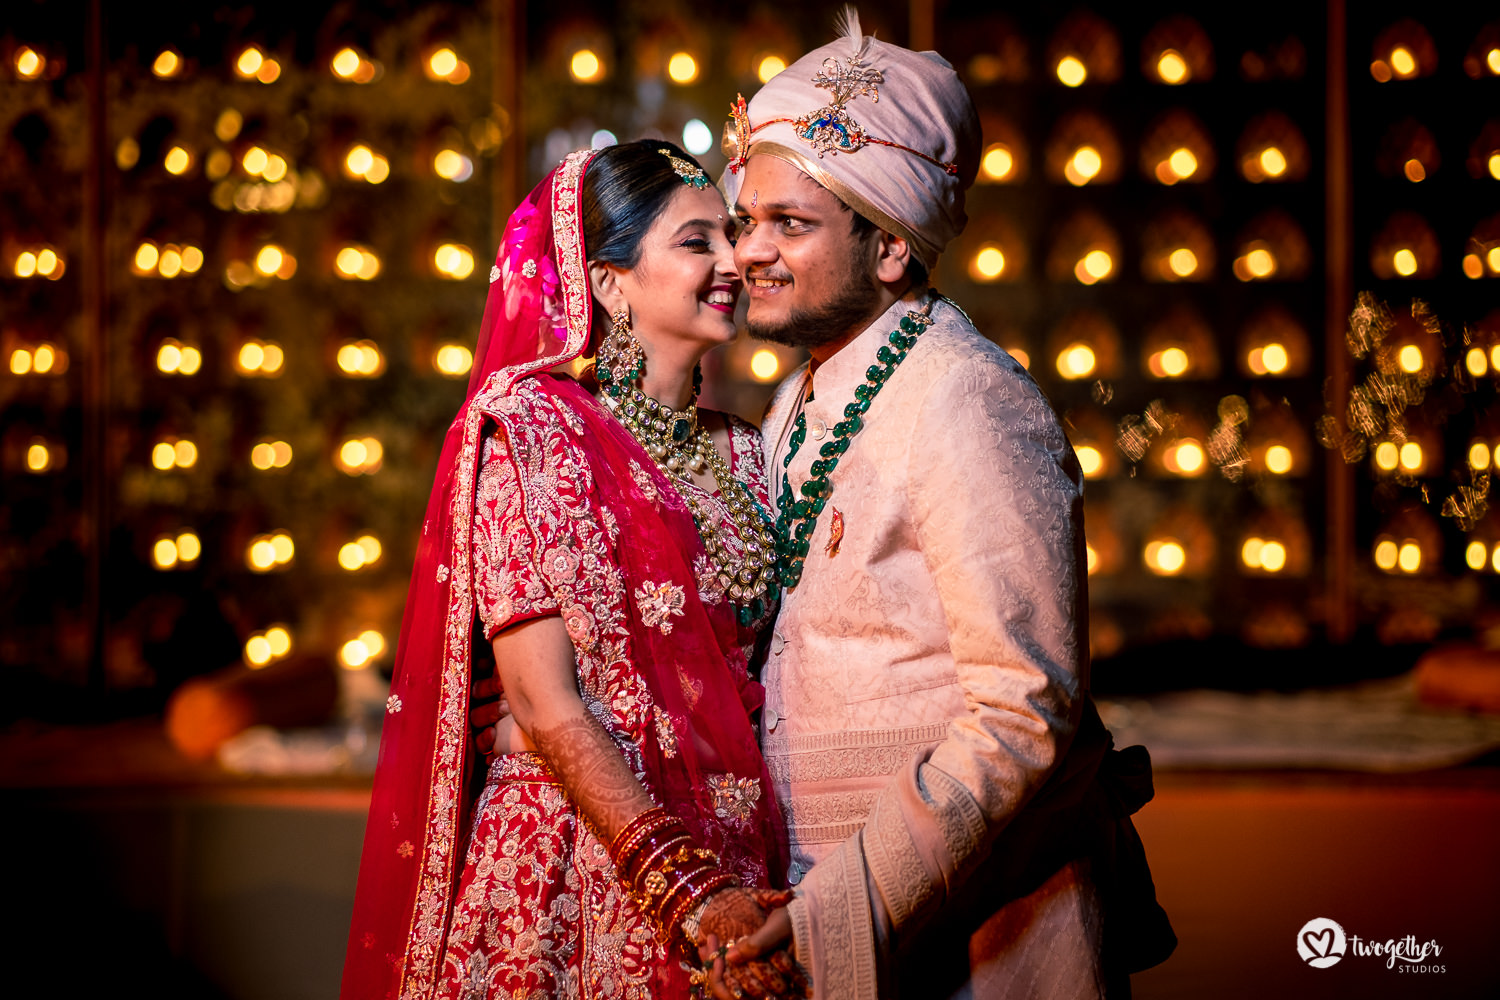 Indian couple wedding portrait at a Jaipur destination wedding.